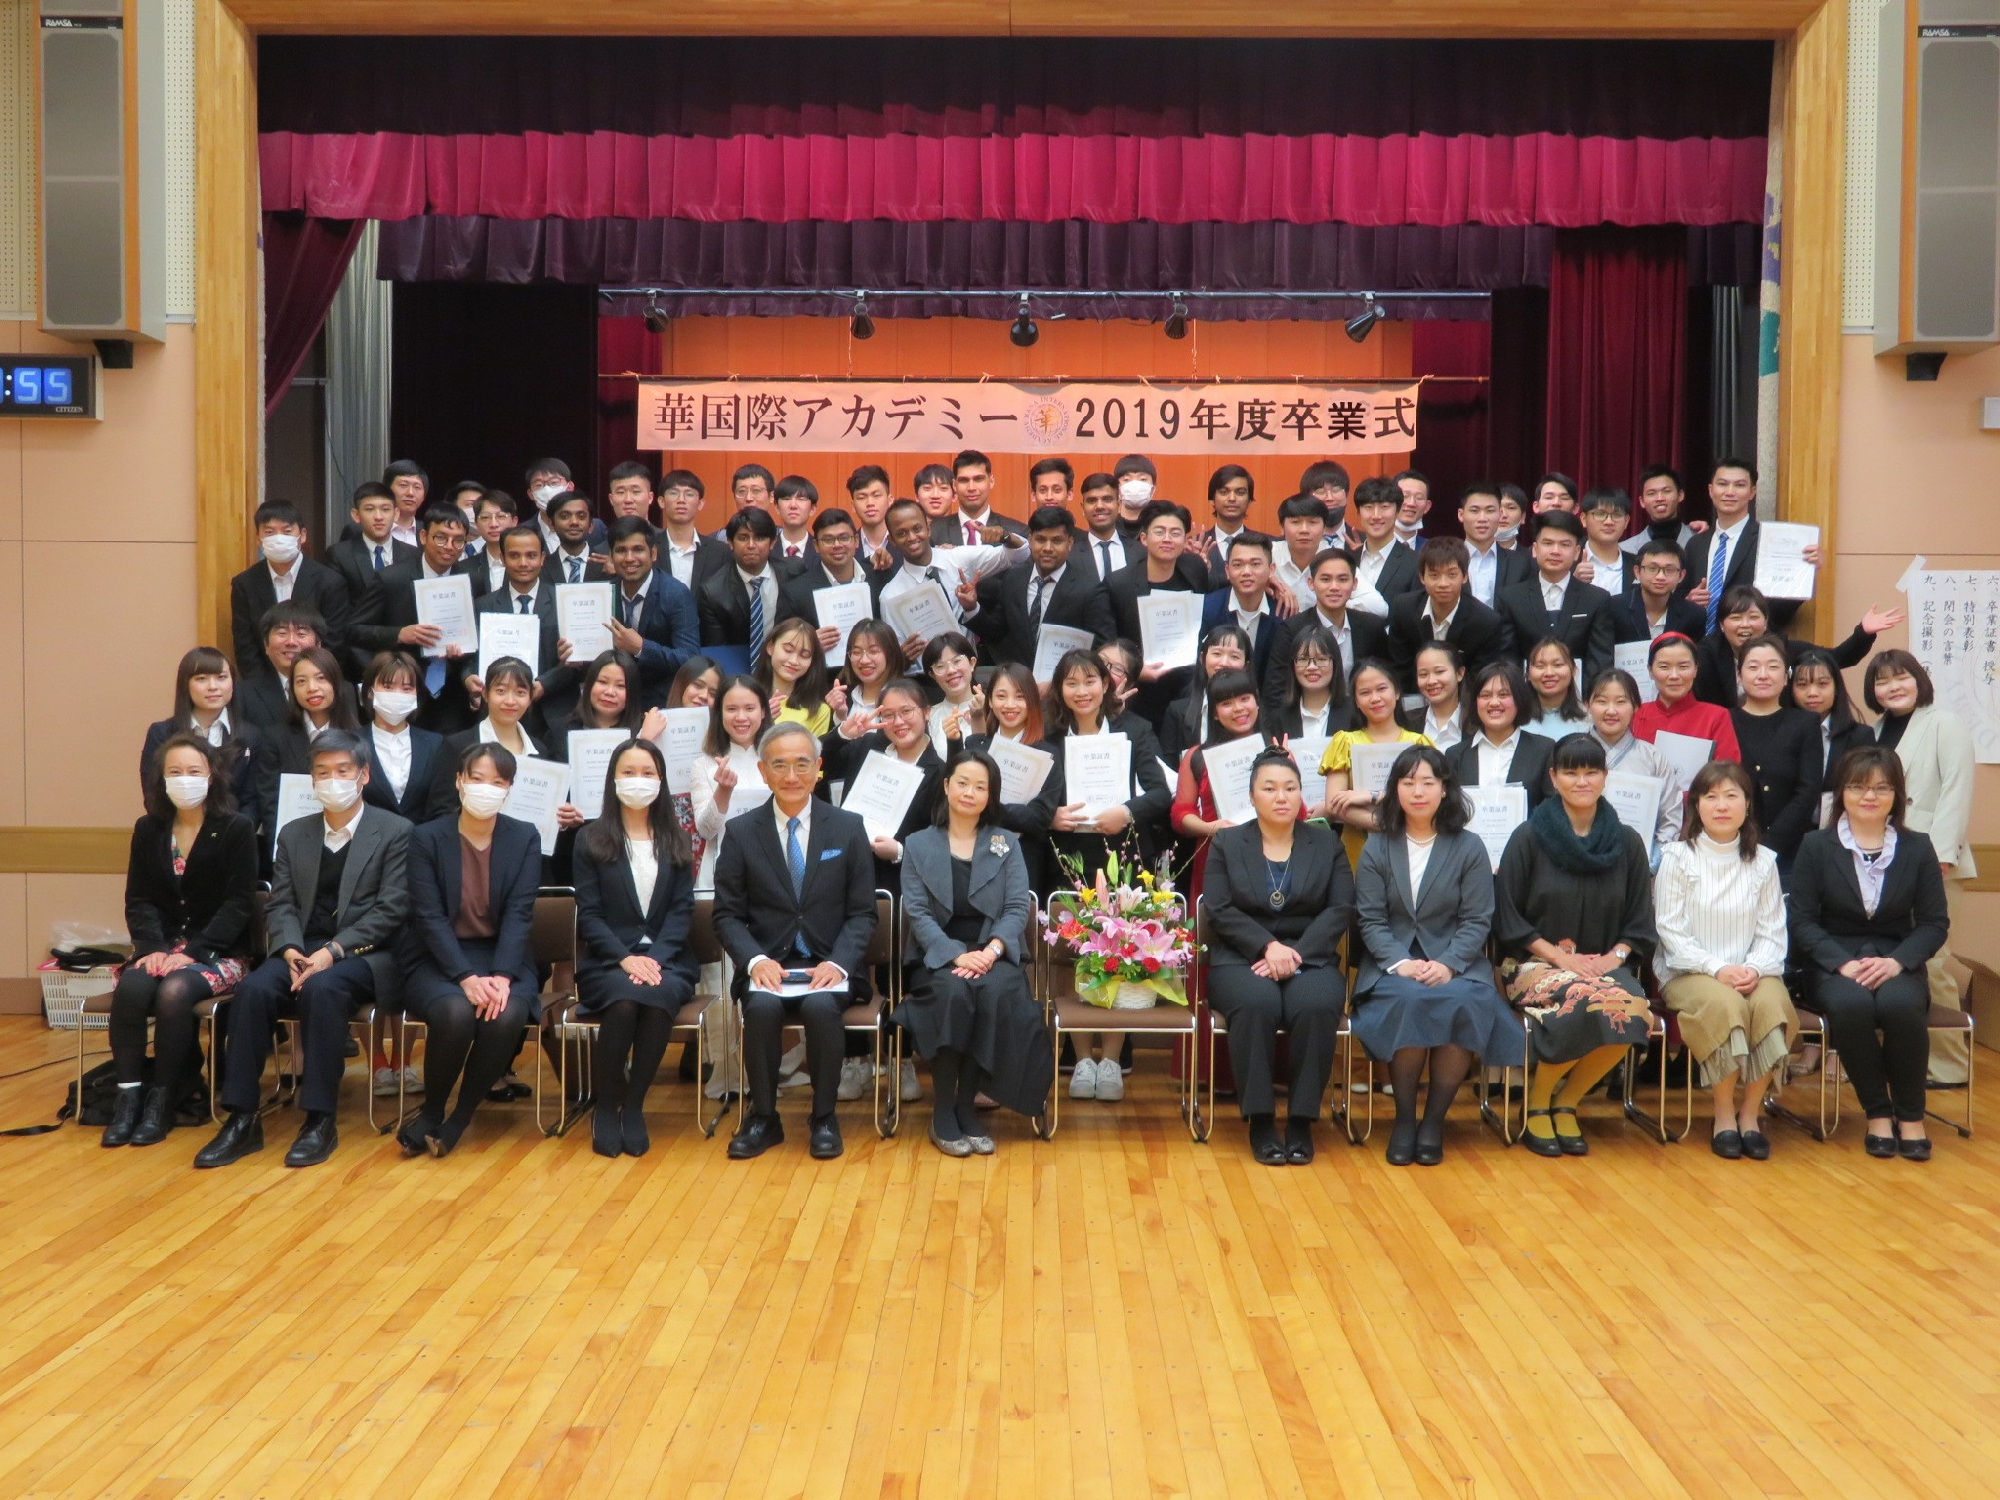 2020/03  2019年度卒業式を行いました。The graduation ceremony for the 2019 students.